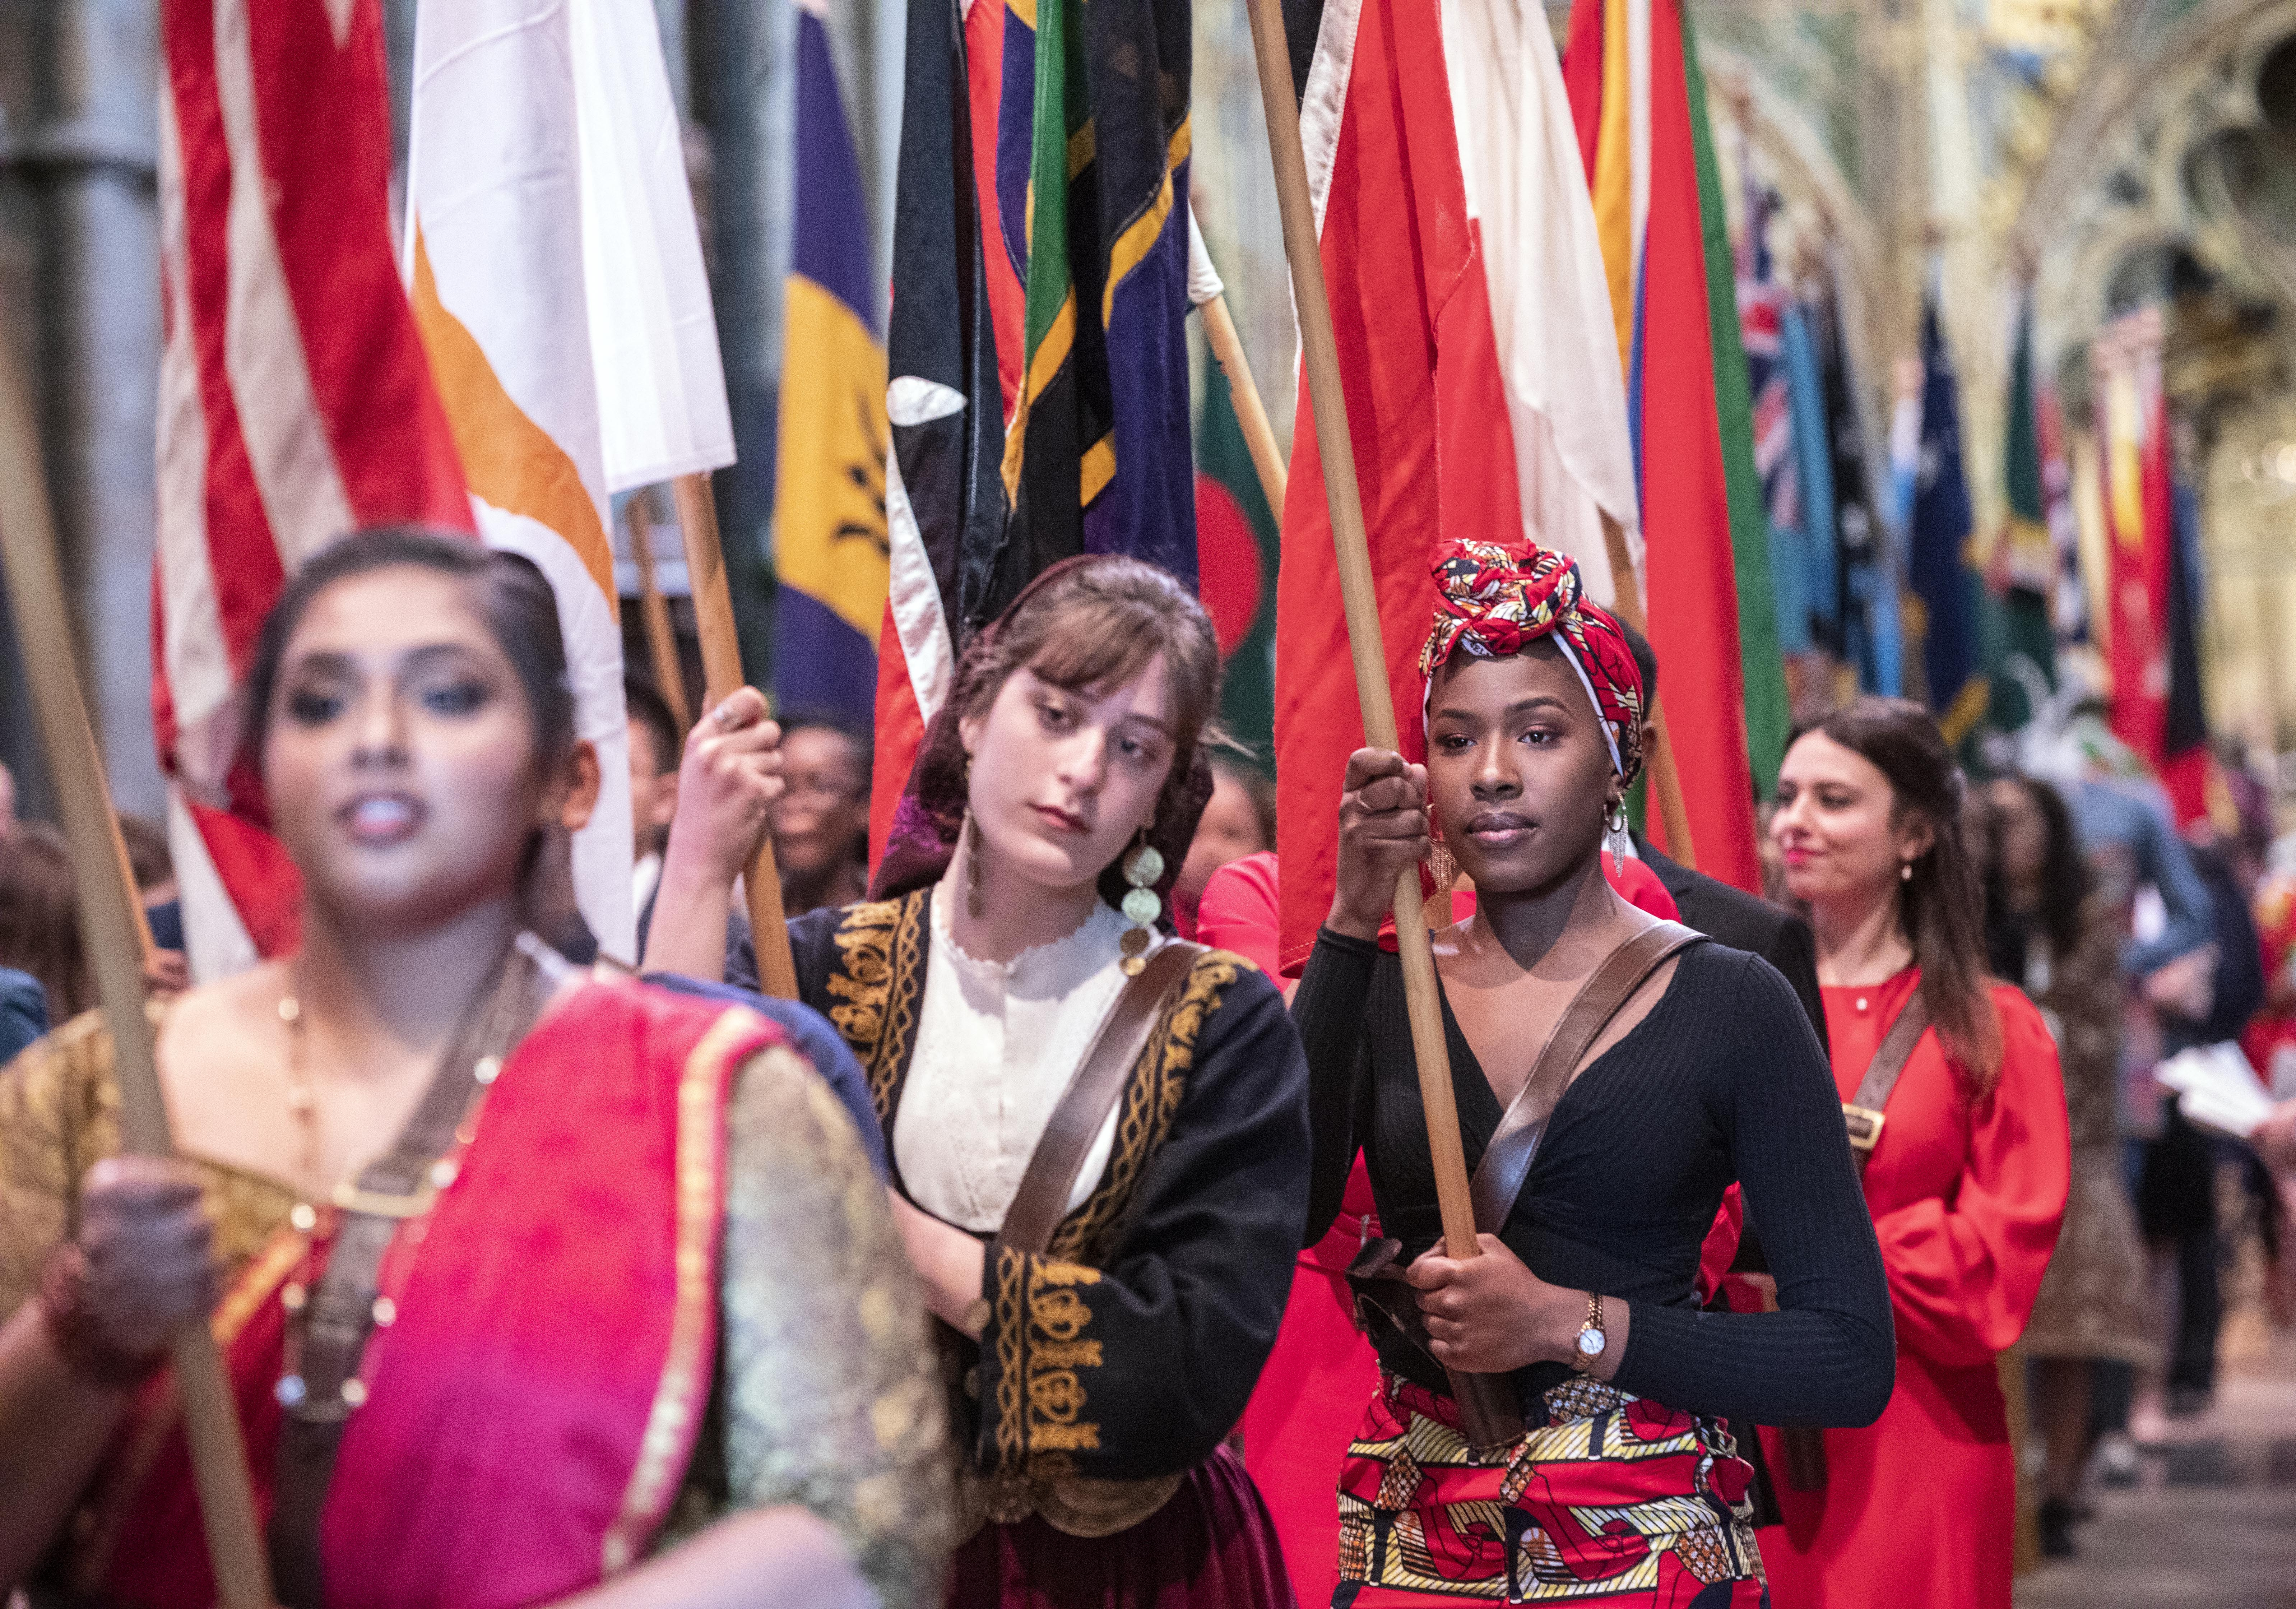 Flag bearers carrying the flags of the Commonwealth during the Commonwealth Service at Westminster Abbey, London.